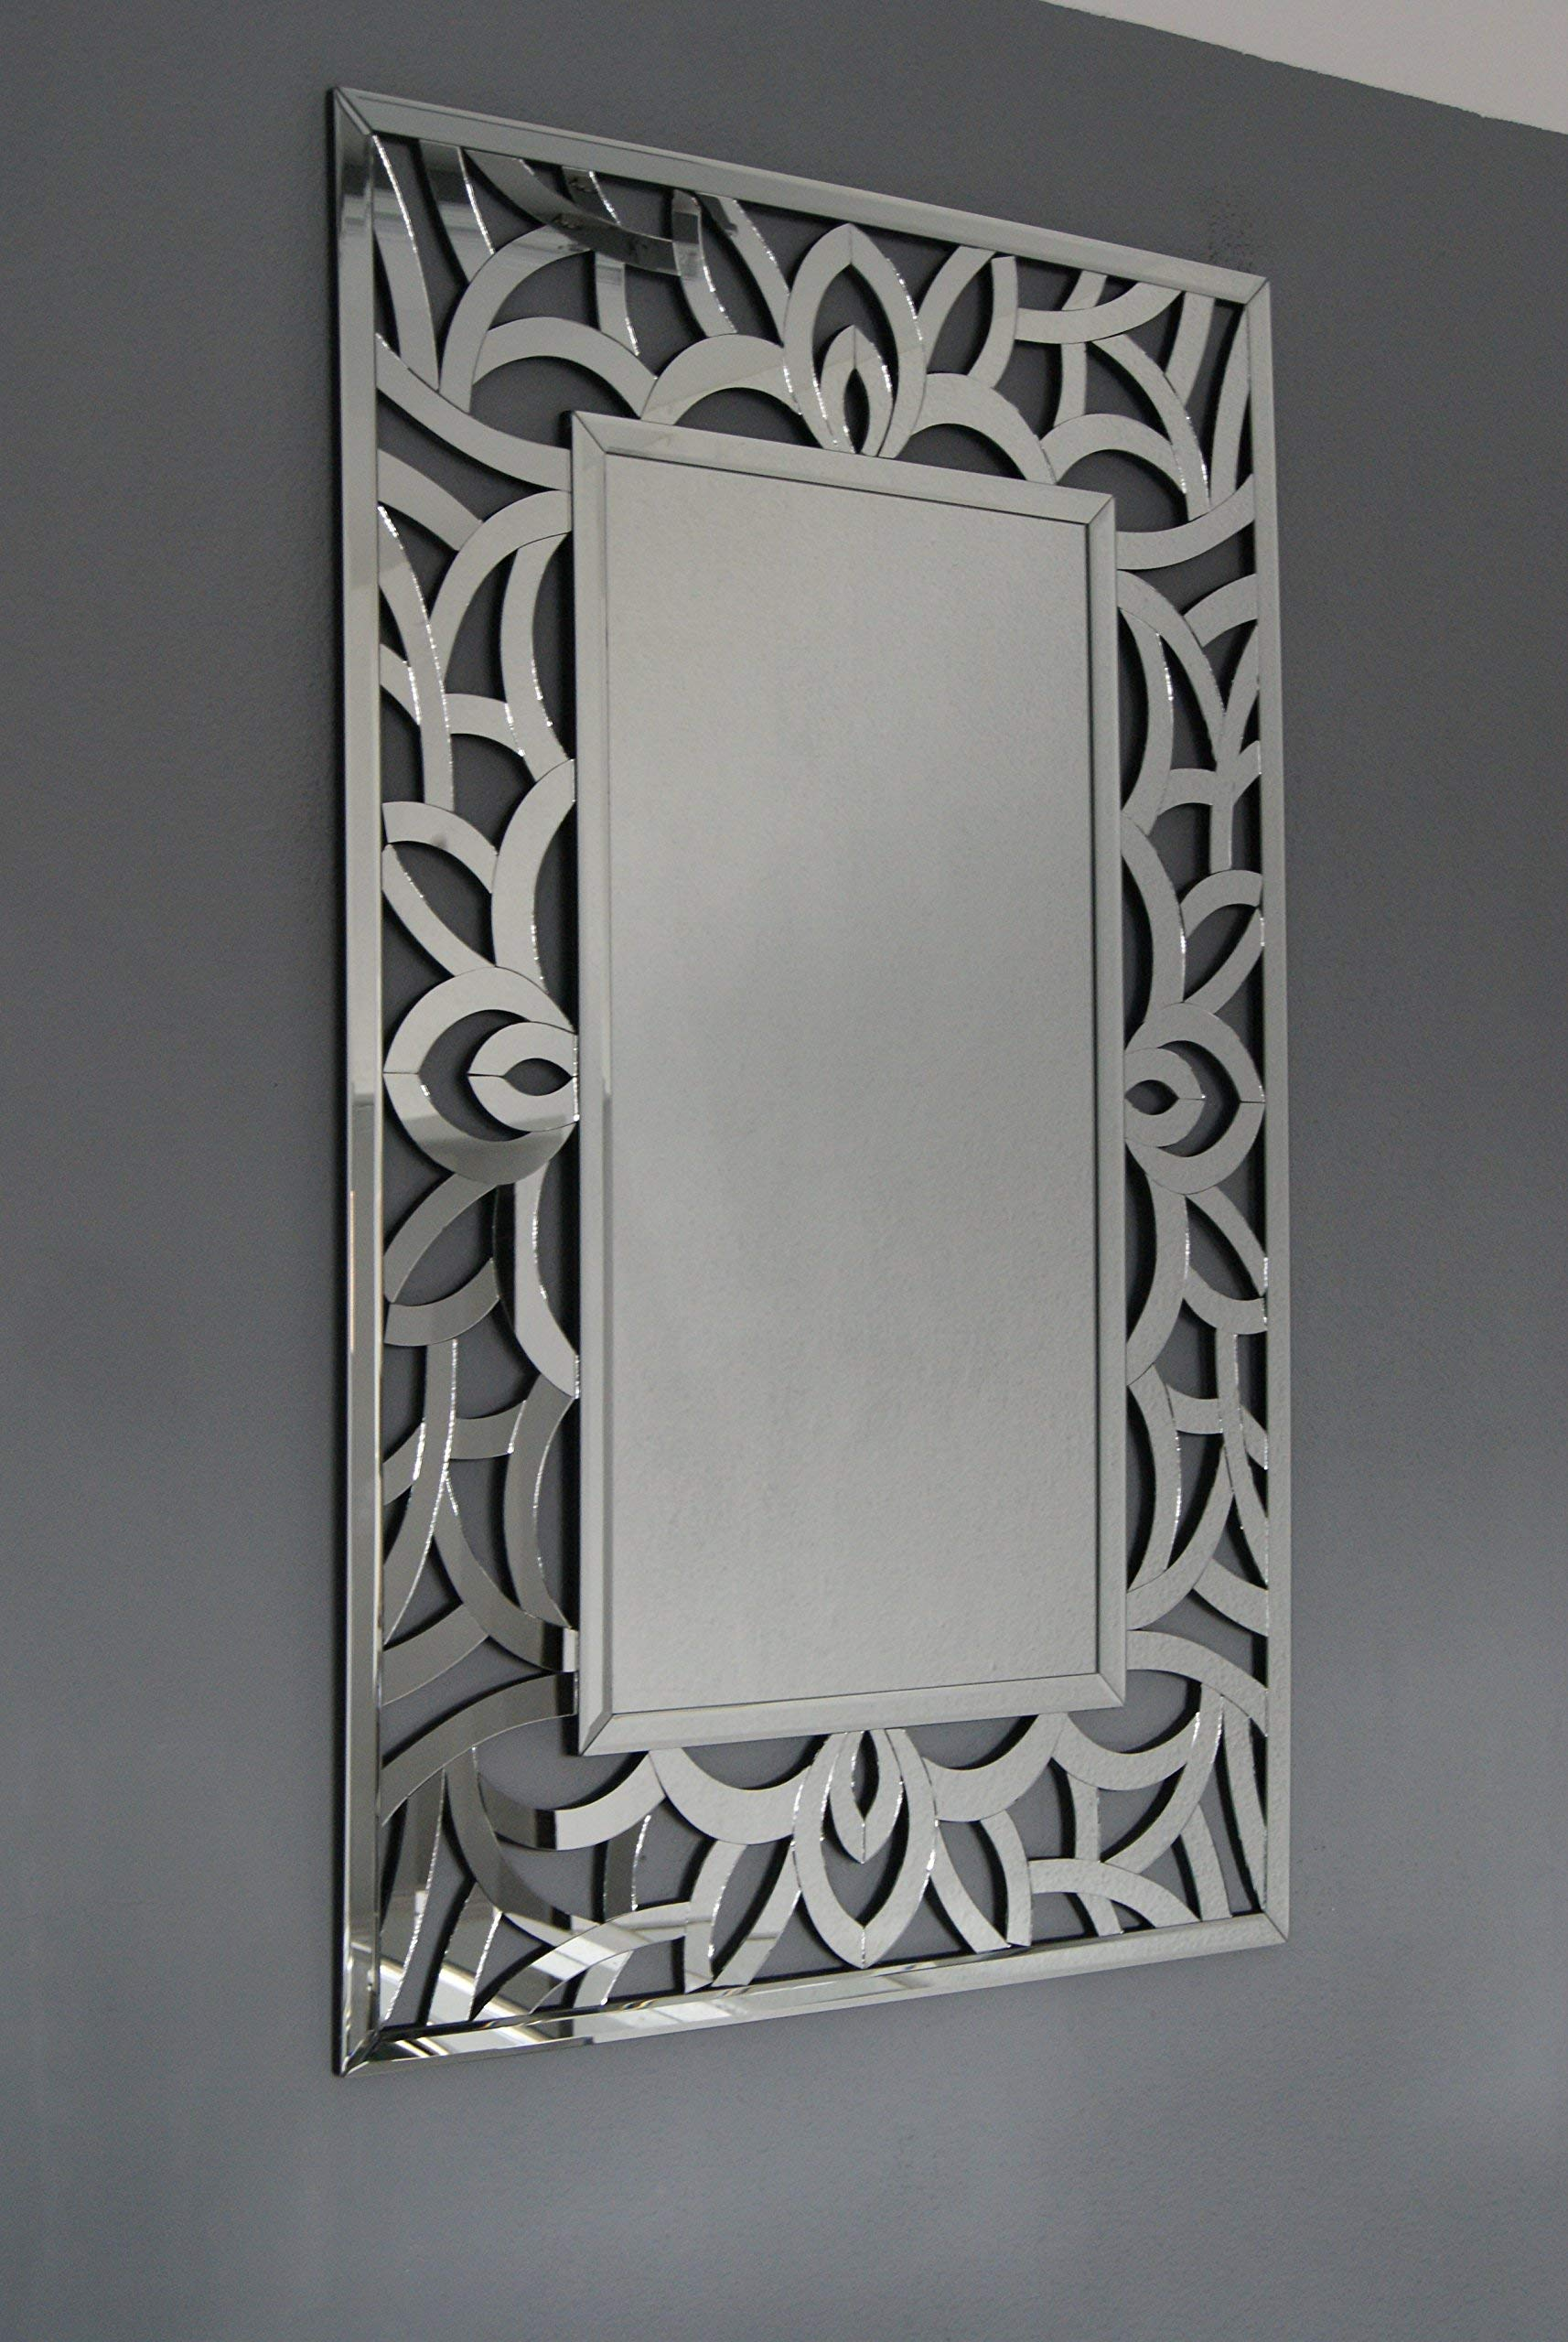 Large Exclusive Modern Swirl Design Venetian Wall Mirror 4ft10 X 2ft5 Amazon Co Uk Kitchen Home